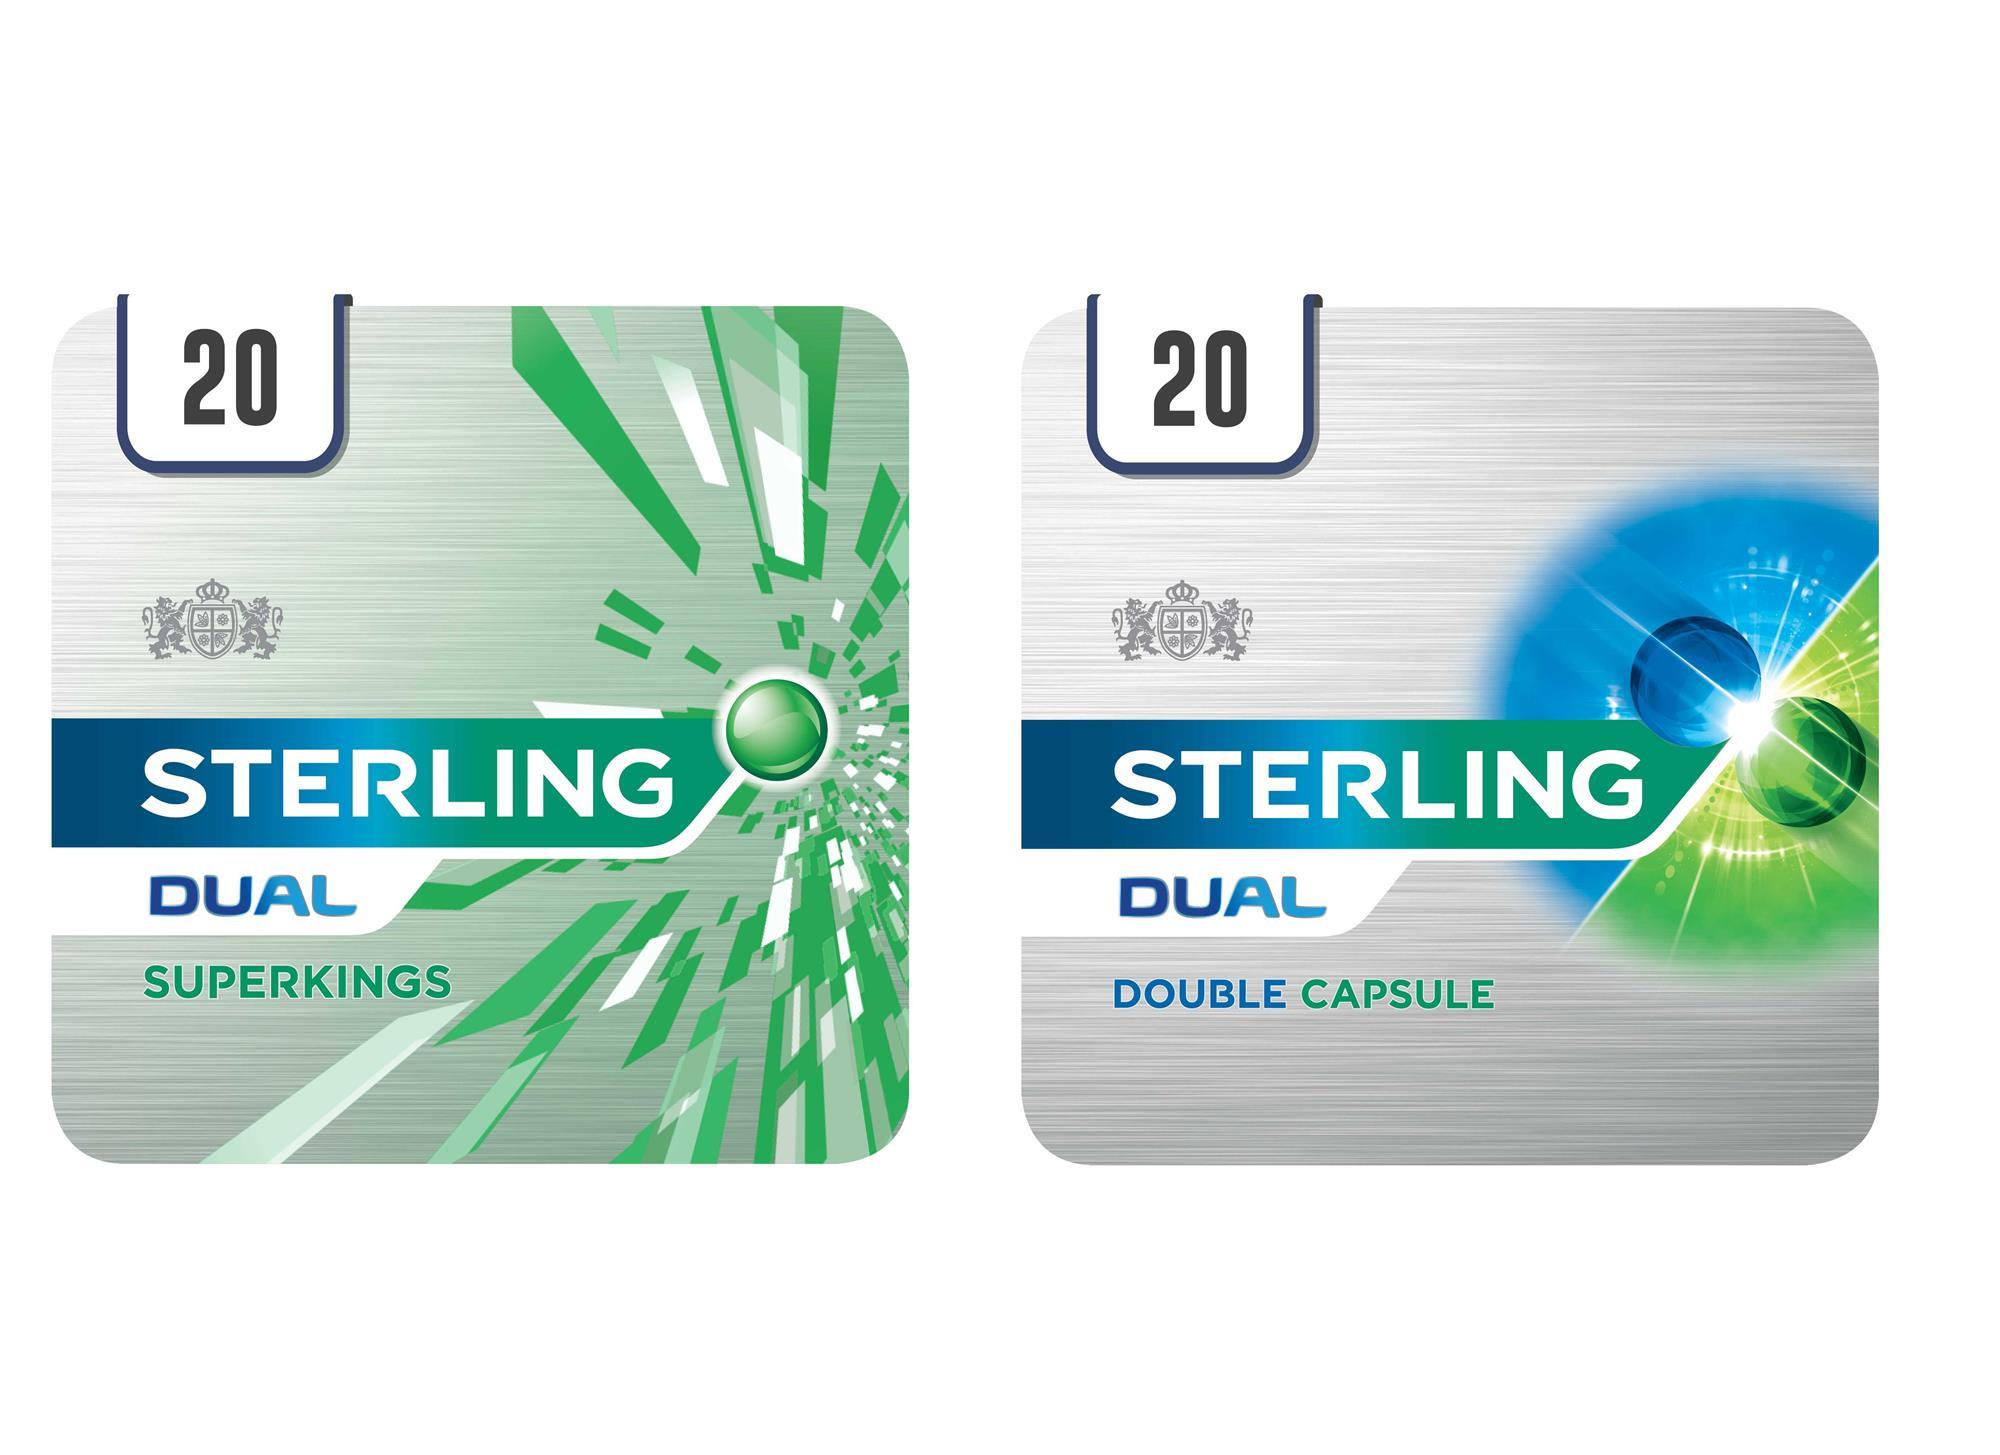 Sterling Dual Capsules Range Extended Product News Convenience Store